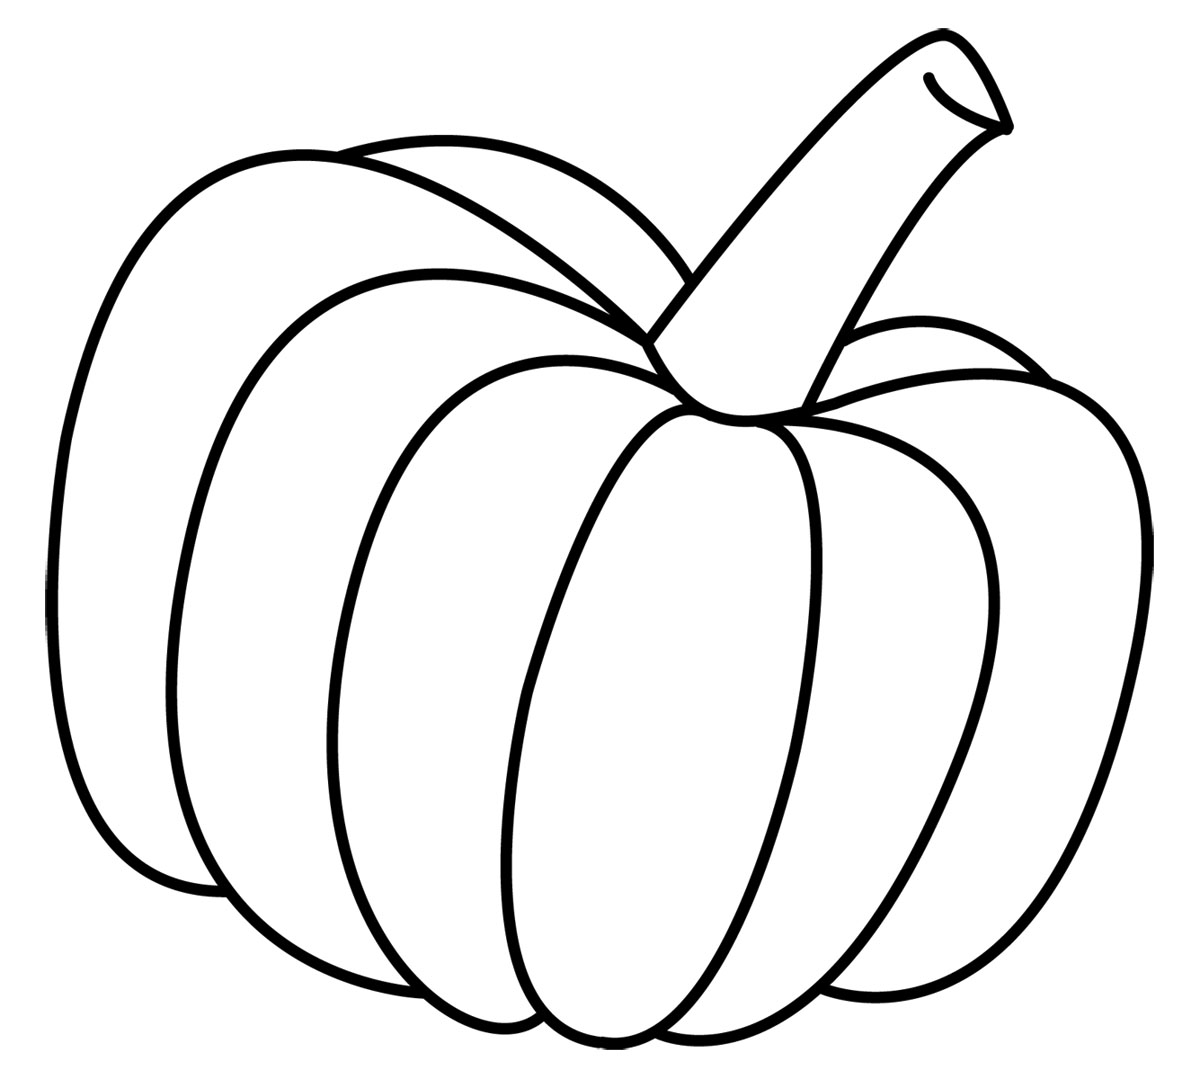 Gourd clipart black and white image Free Image Pumpkin, Download Free Clip Art, Free Clip Art on Clipart ... image